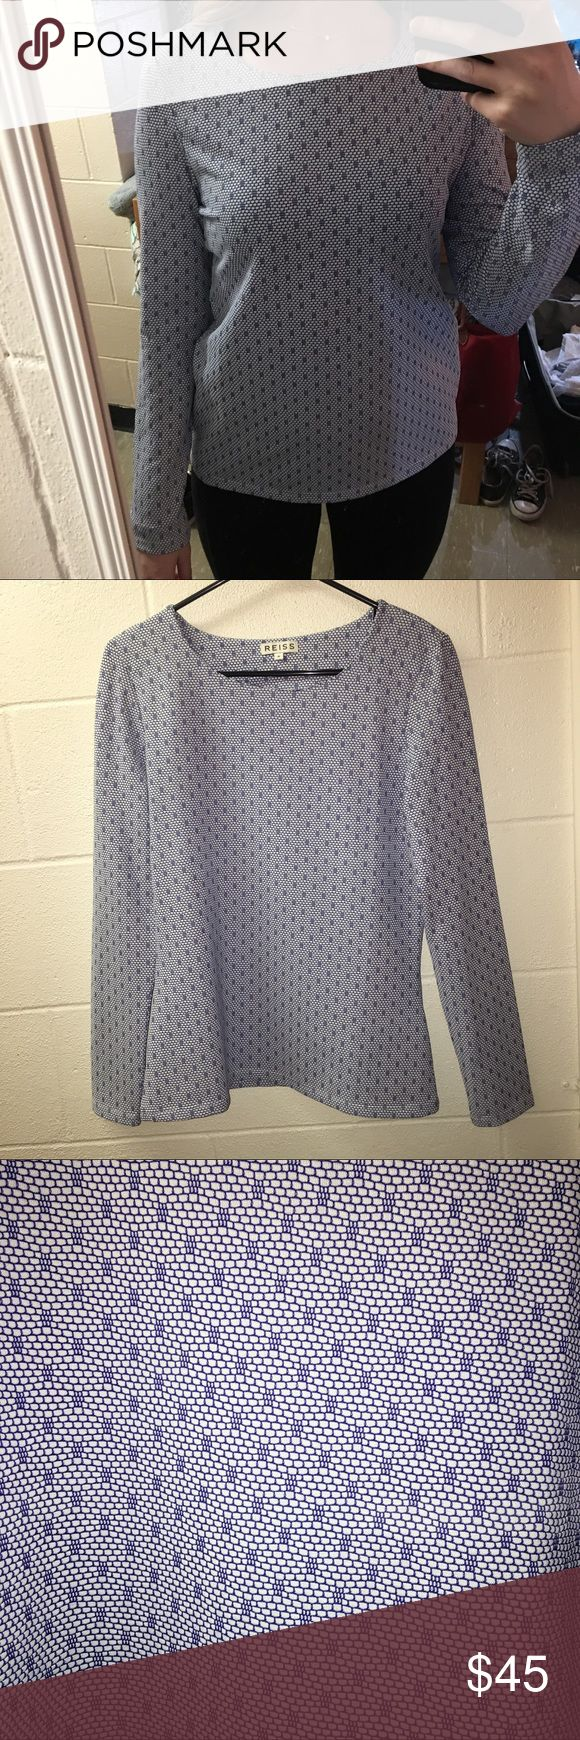 Reiss Top 96% Polyester 4% Elastane Reiss Tops